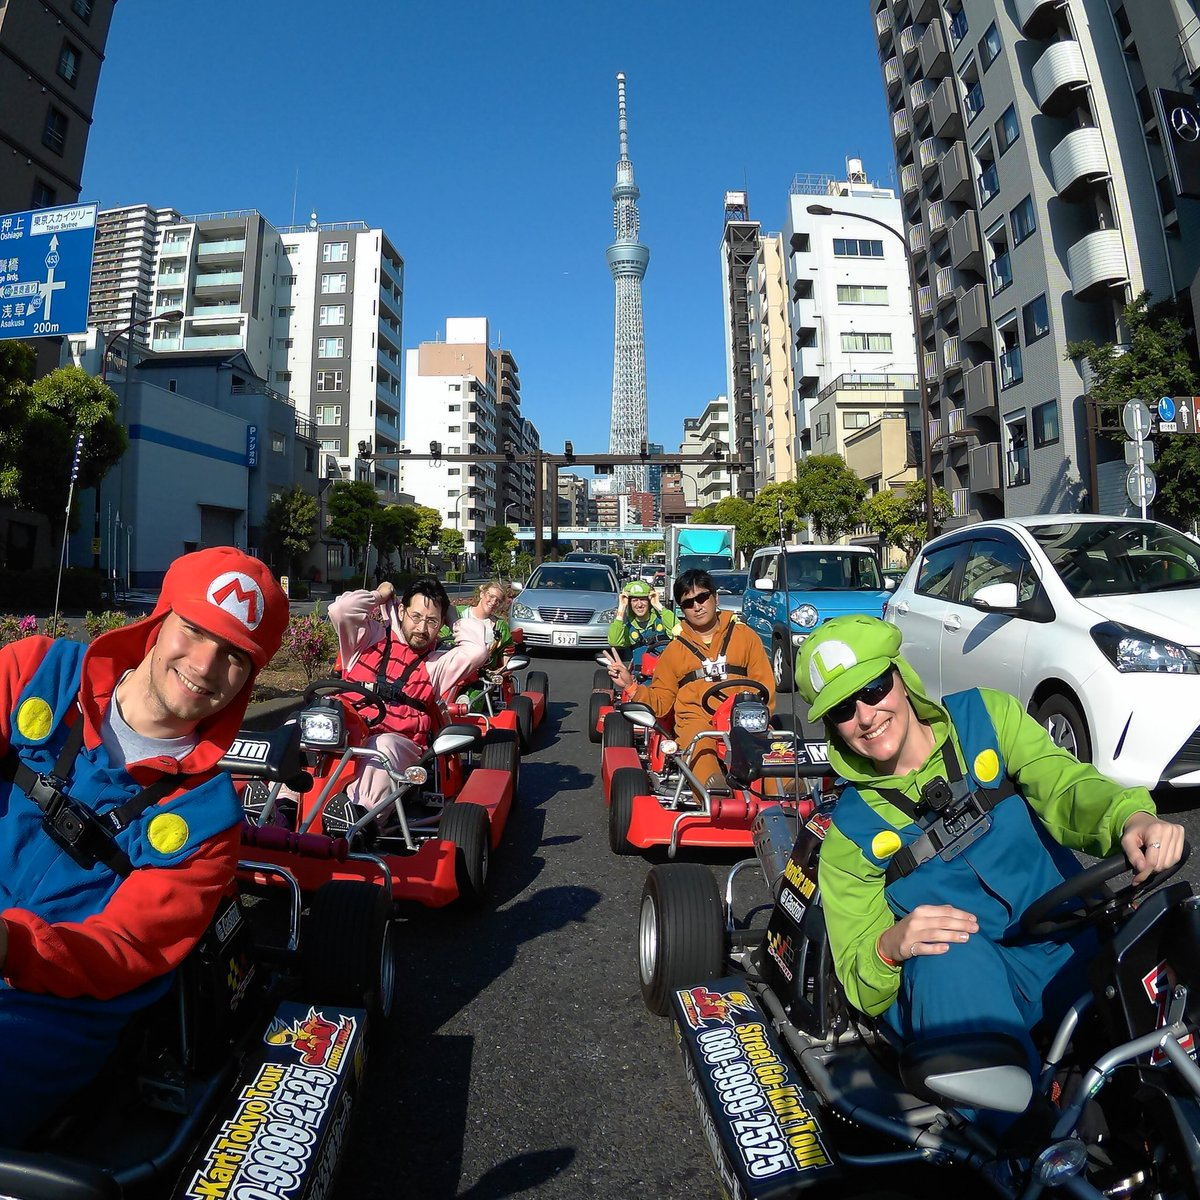 Super Mario Cart needs a Tokyo stage like this! #codejapantour https://t.co/dBlocQLdMr